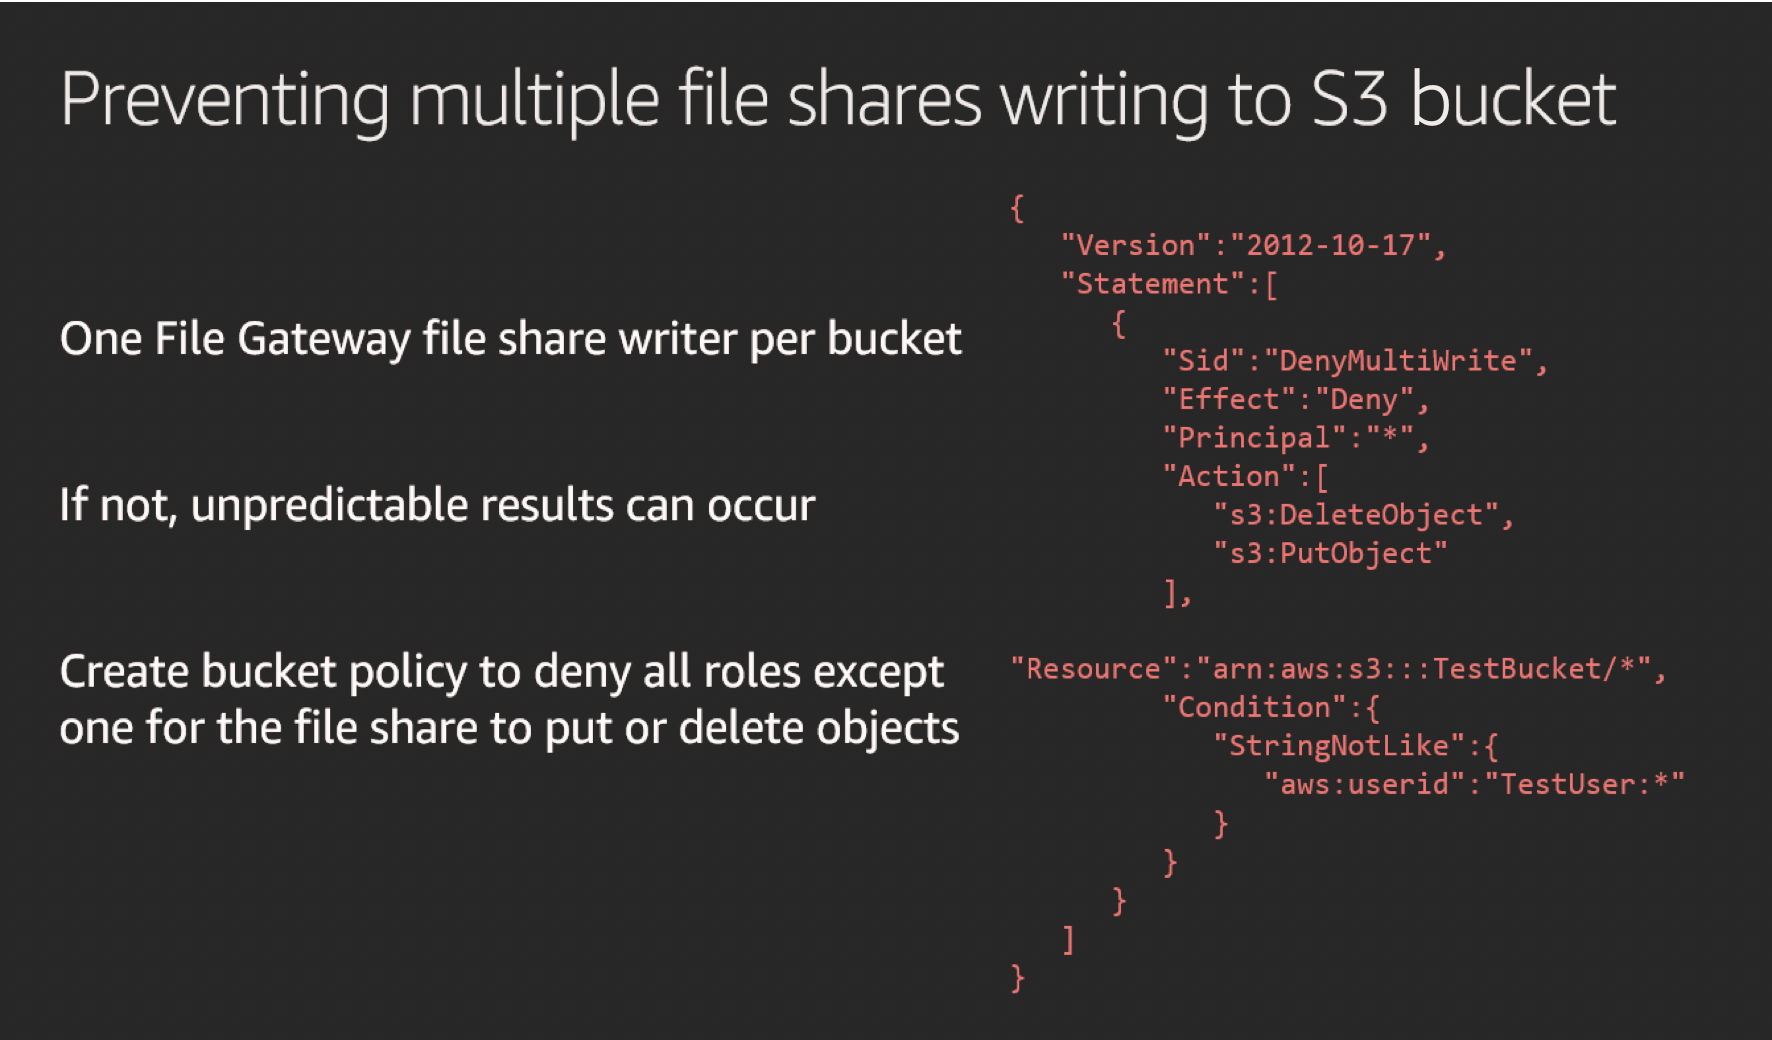 Preventing multiple file shares writing to an S3 bucket